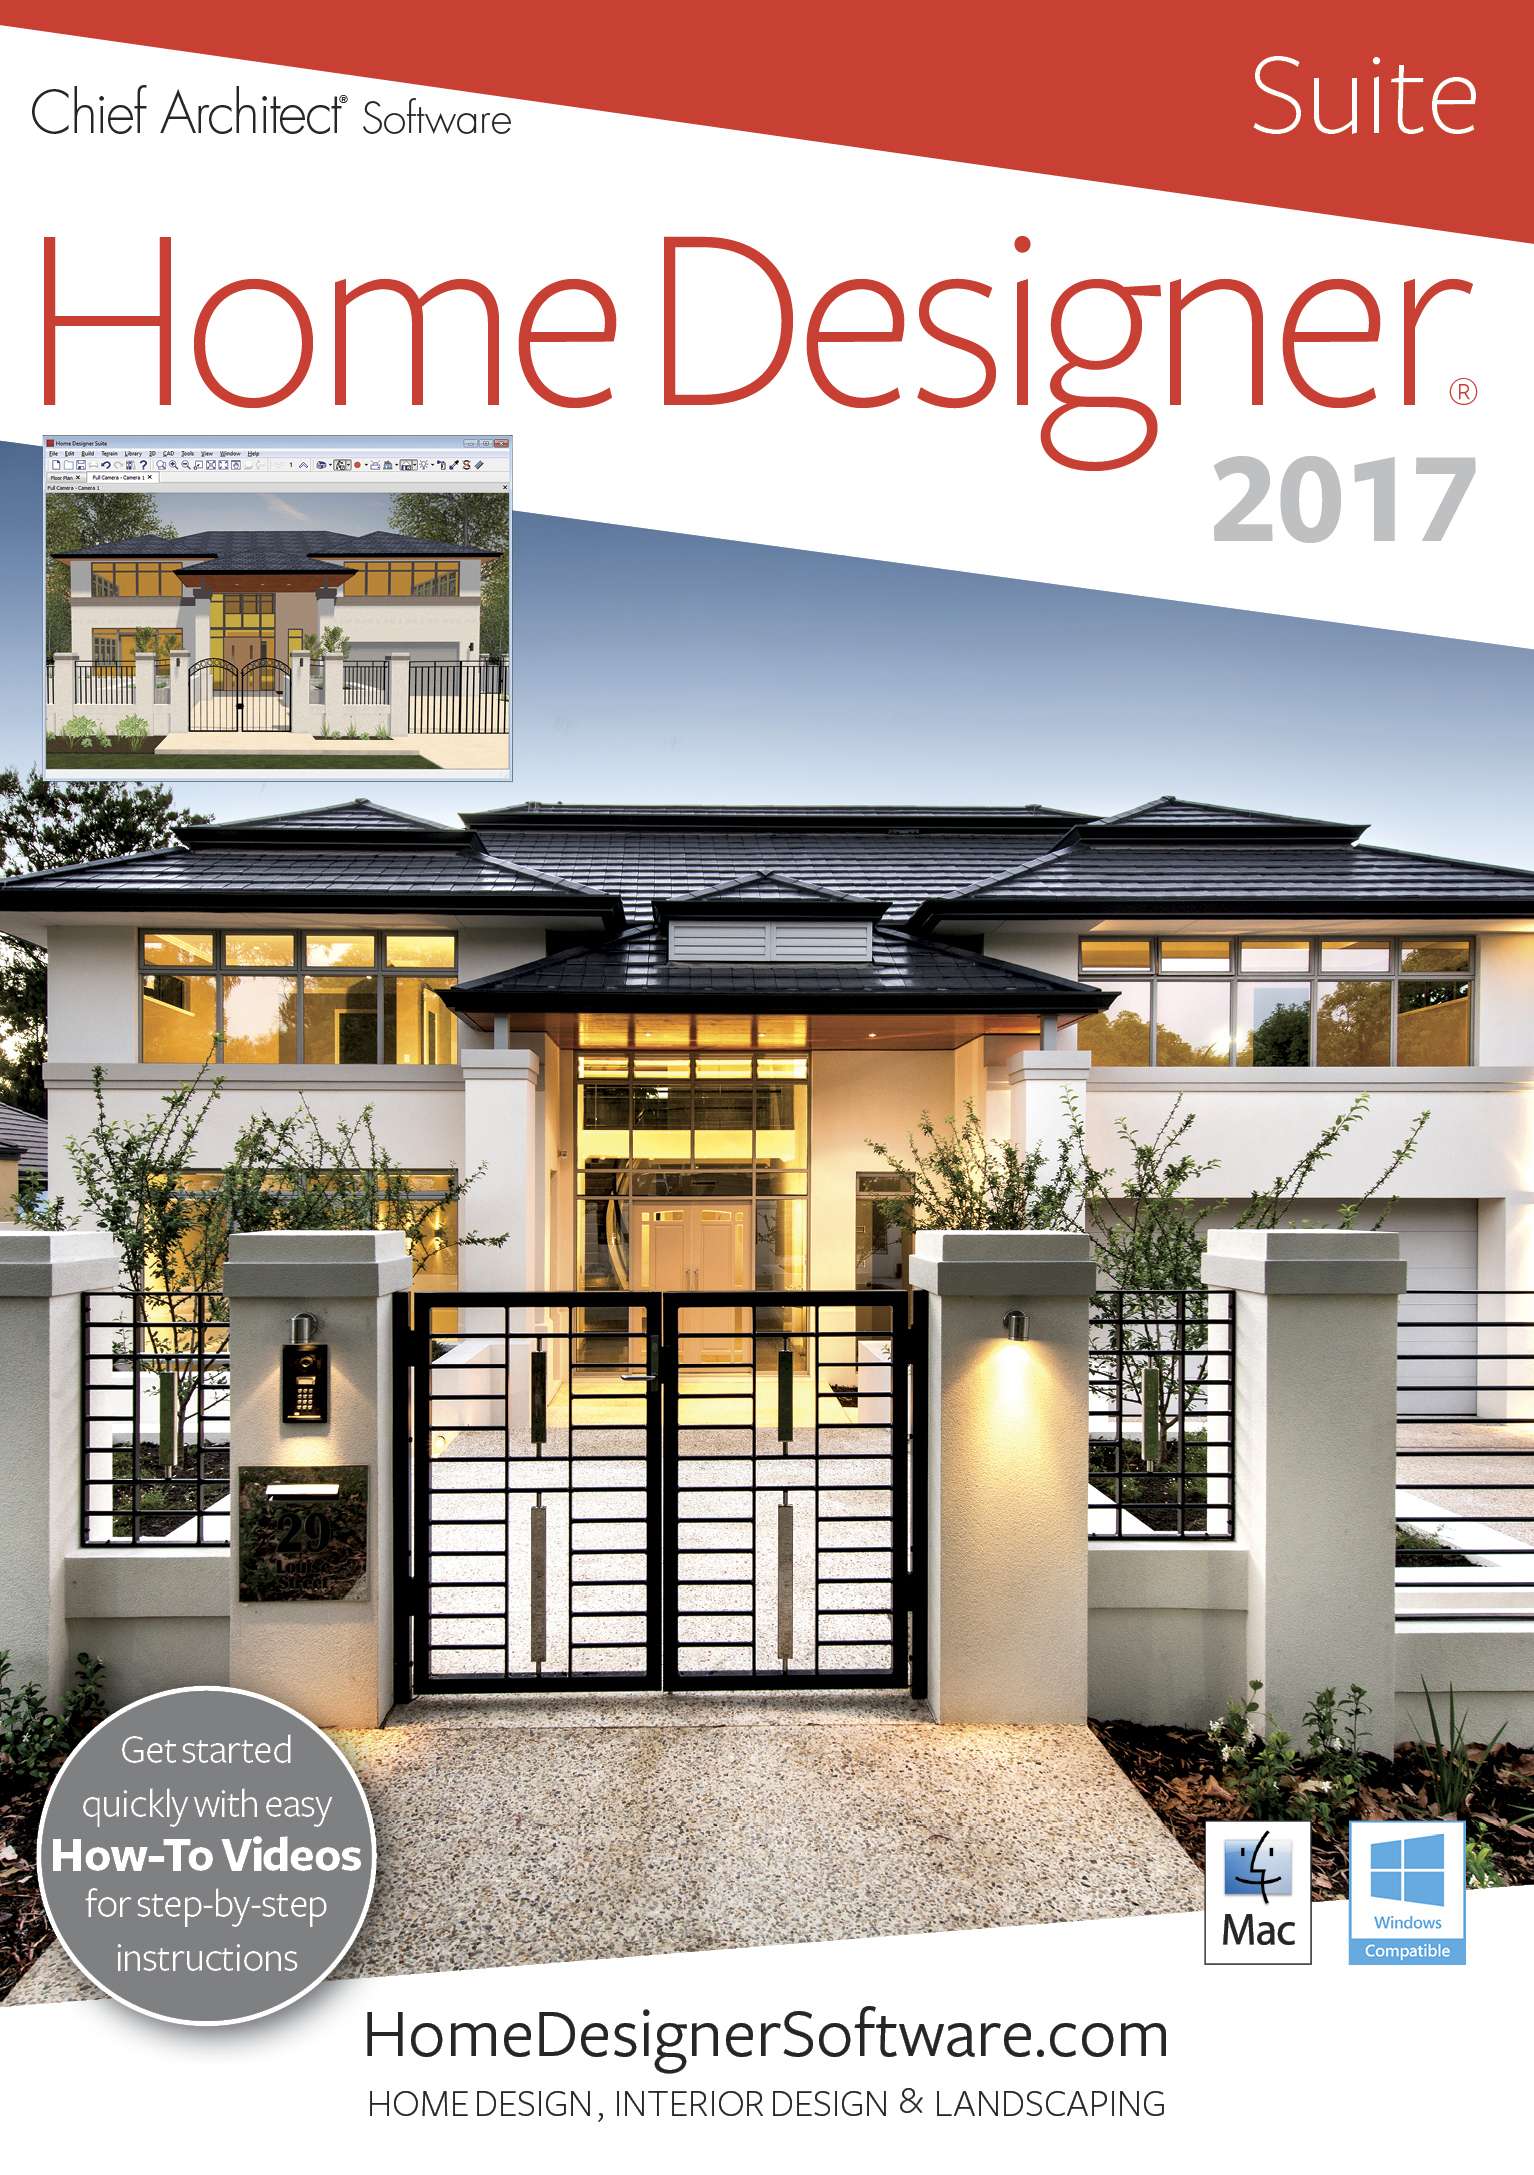 Amazoncom Home Designer Suite 2017 Mac Software